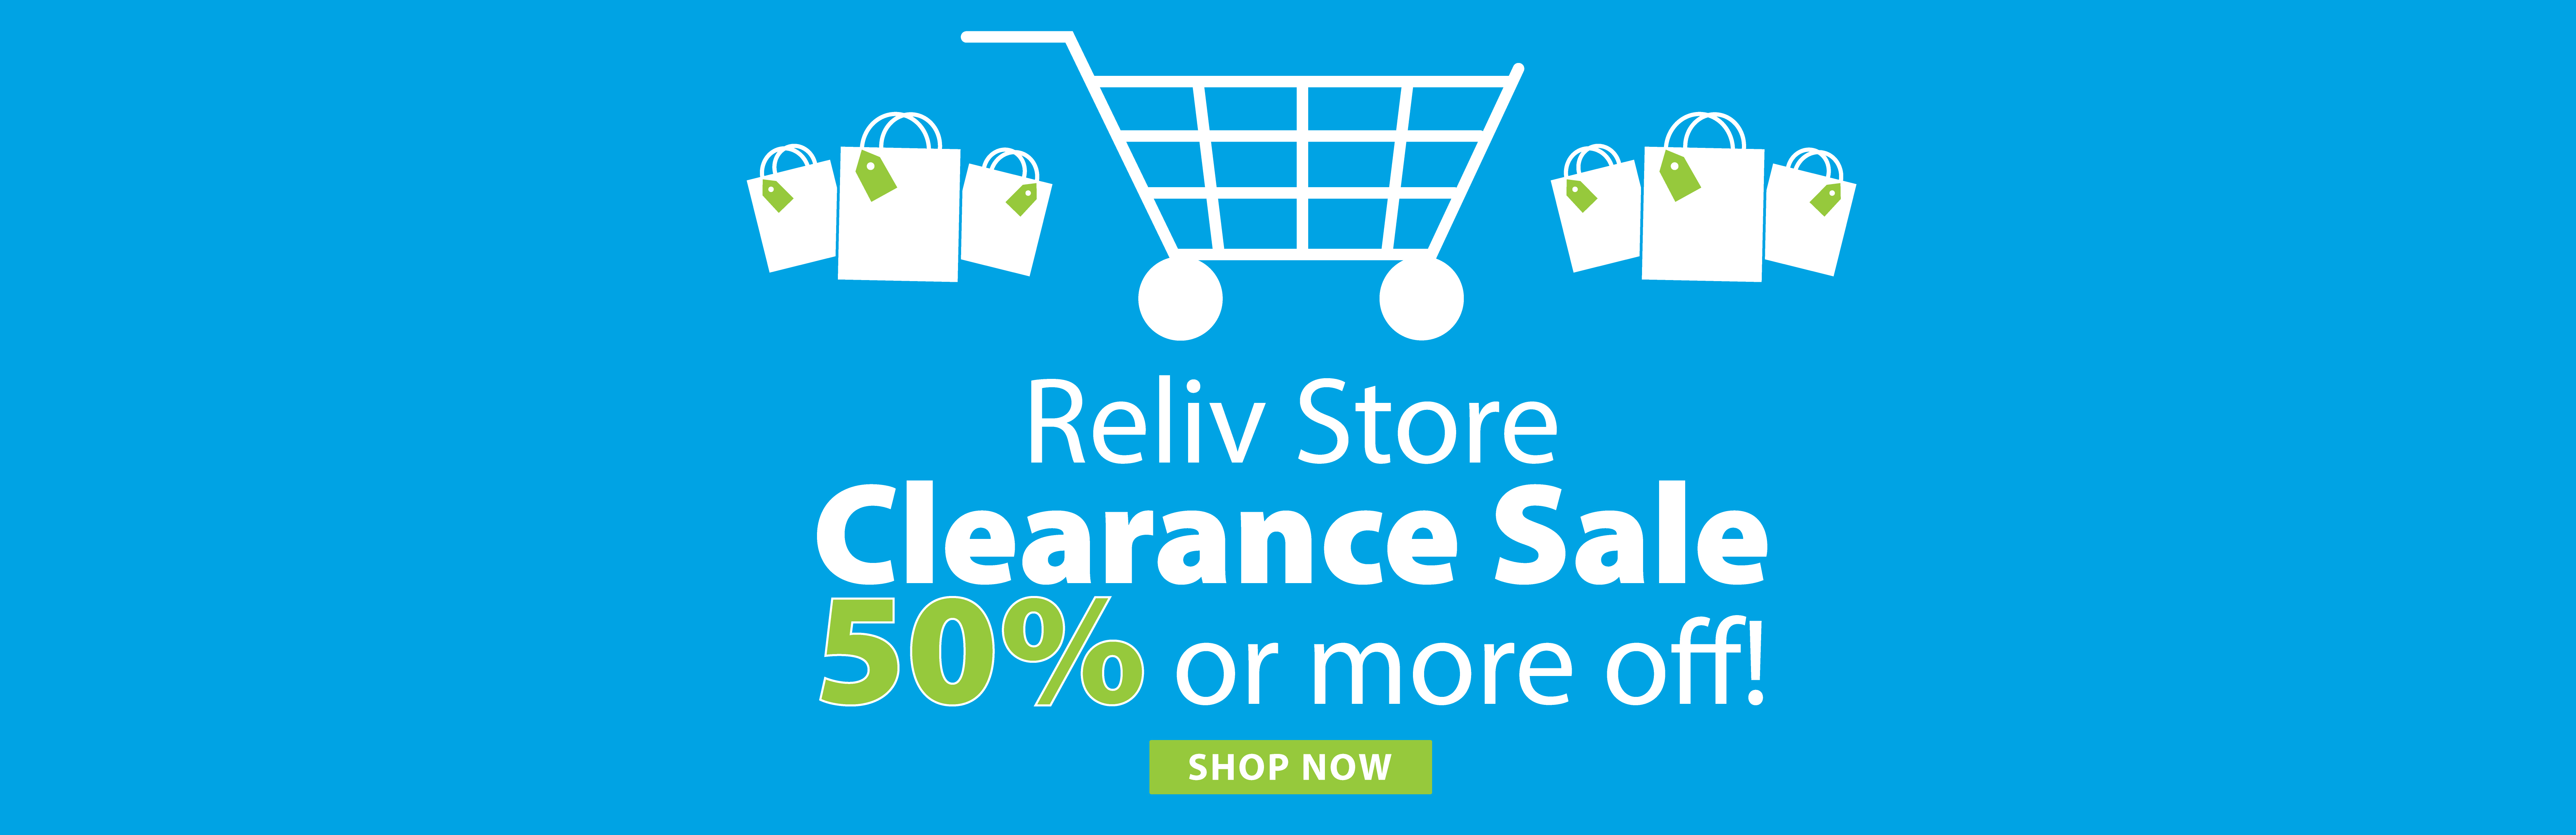 Reliv Store Clearance Sale